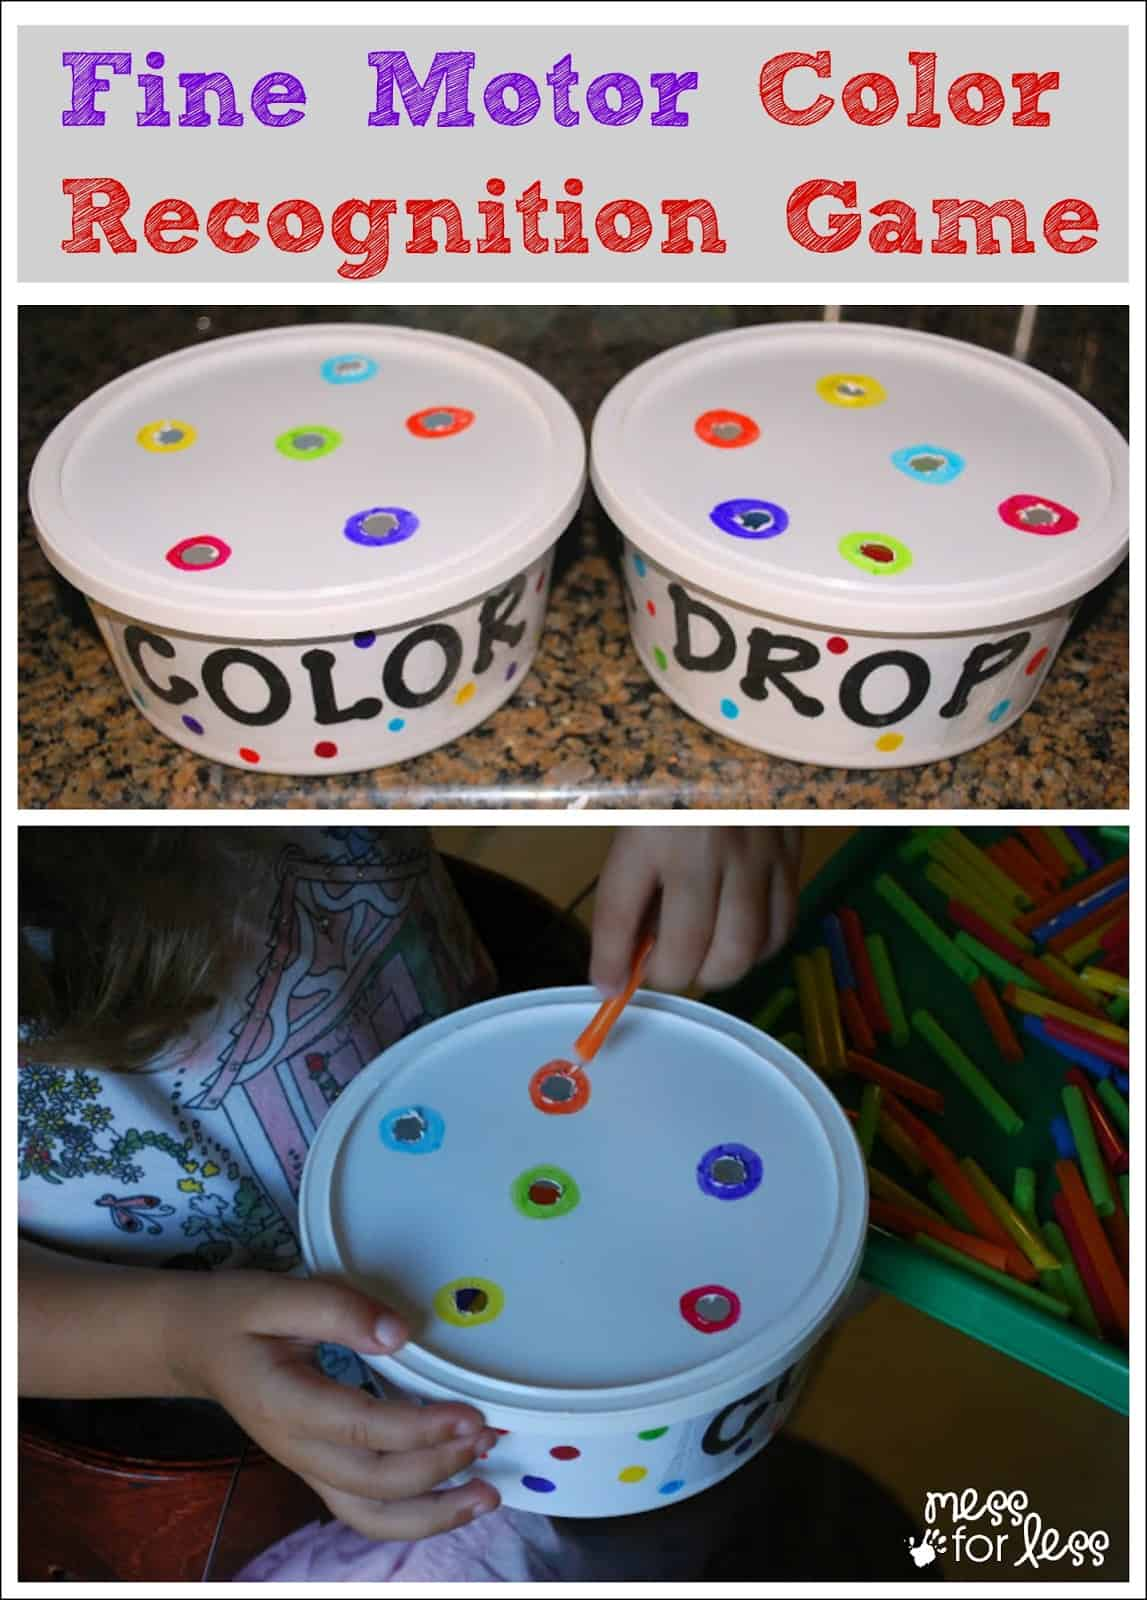 Fine Motor Skills Color Recognition Game - Use recyclables to make a fun game that works on many basic skills for toddlers and preschoolers.